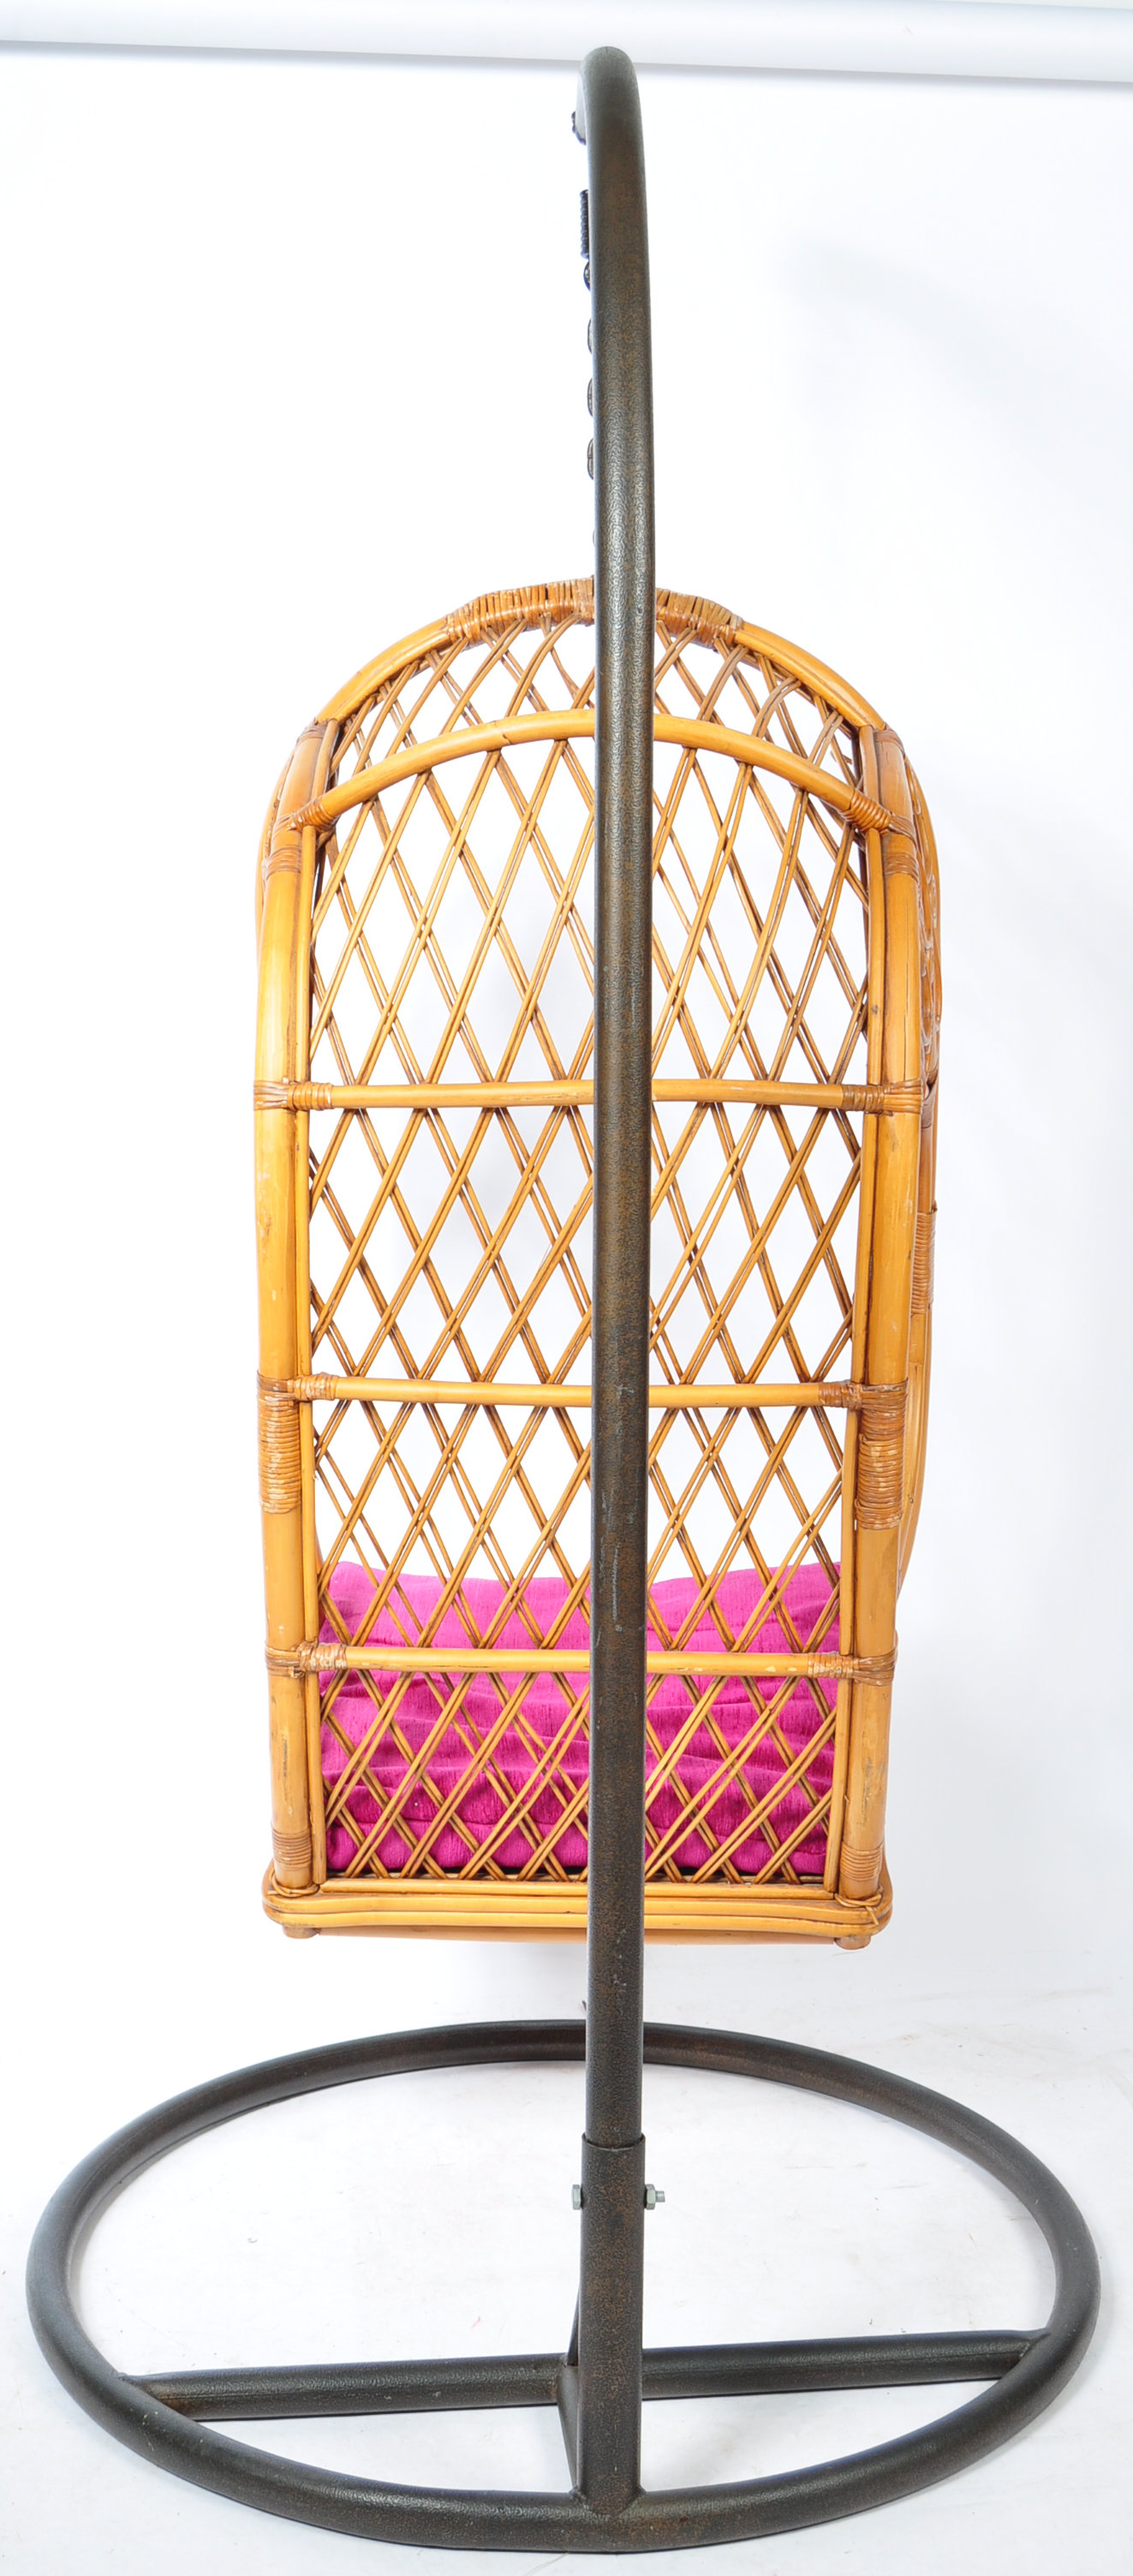 HANGING BASKET EGG SHAPED PENDULUM CHAIR OF WICKER CONSTRUCTION - Image 5 of 8